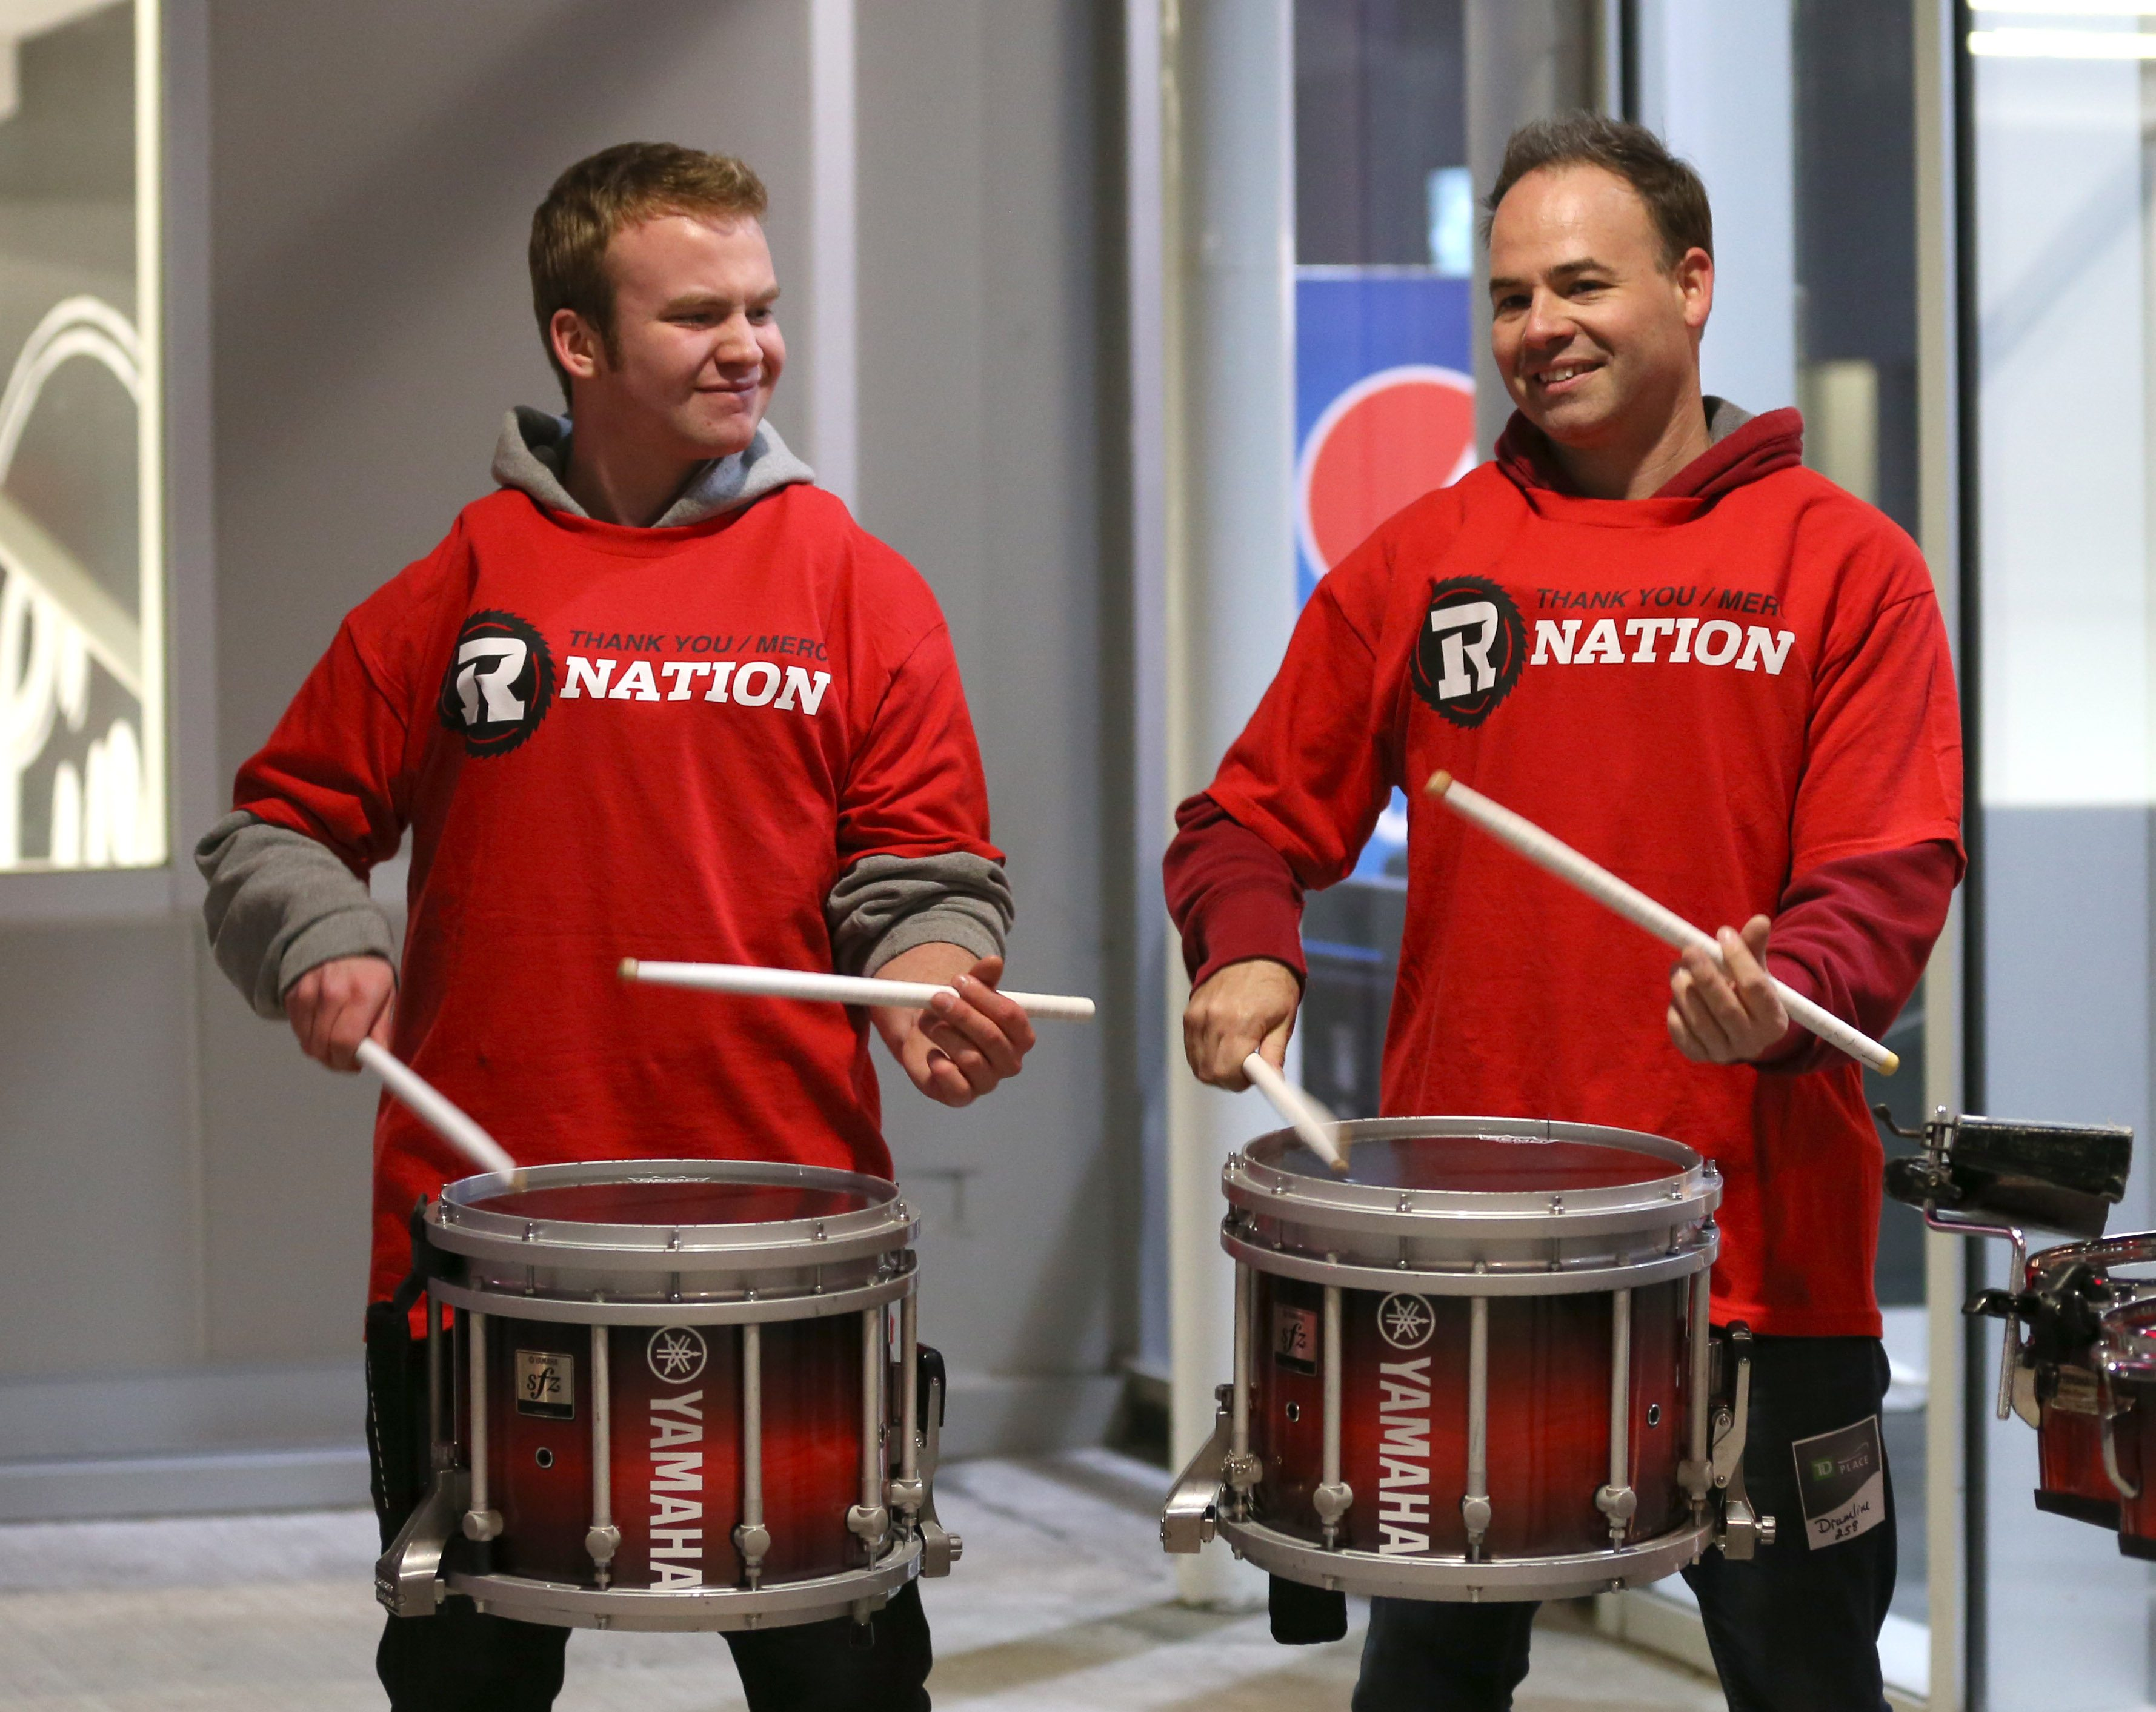 A drumline plays prior to the start of the 103rd Grey Cup game between the Edmonton Eskimos and the Ottawa Redblacks at a viewing party at The Arena at TD Place. Photo by Jana Chytilova, OTTAWA magazine.